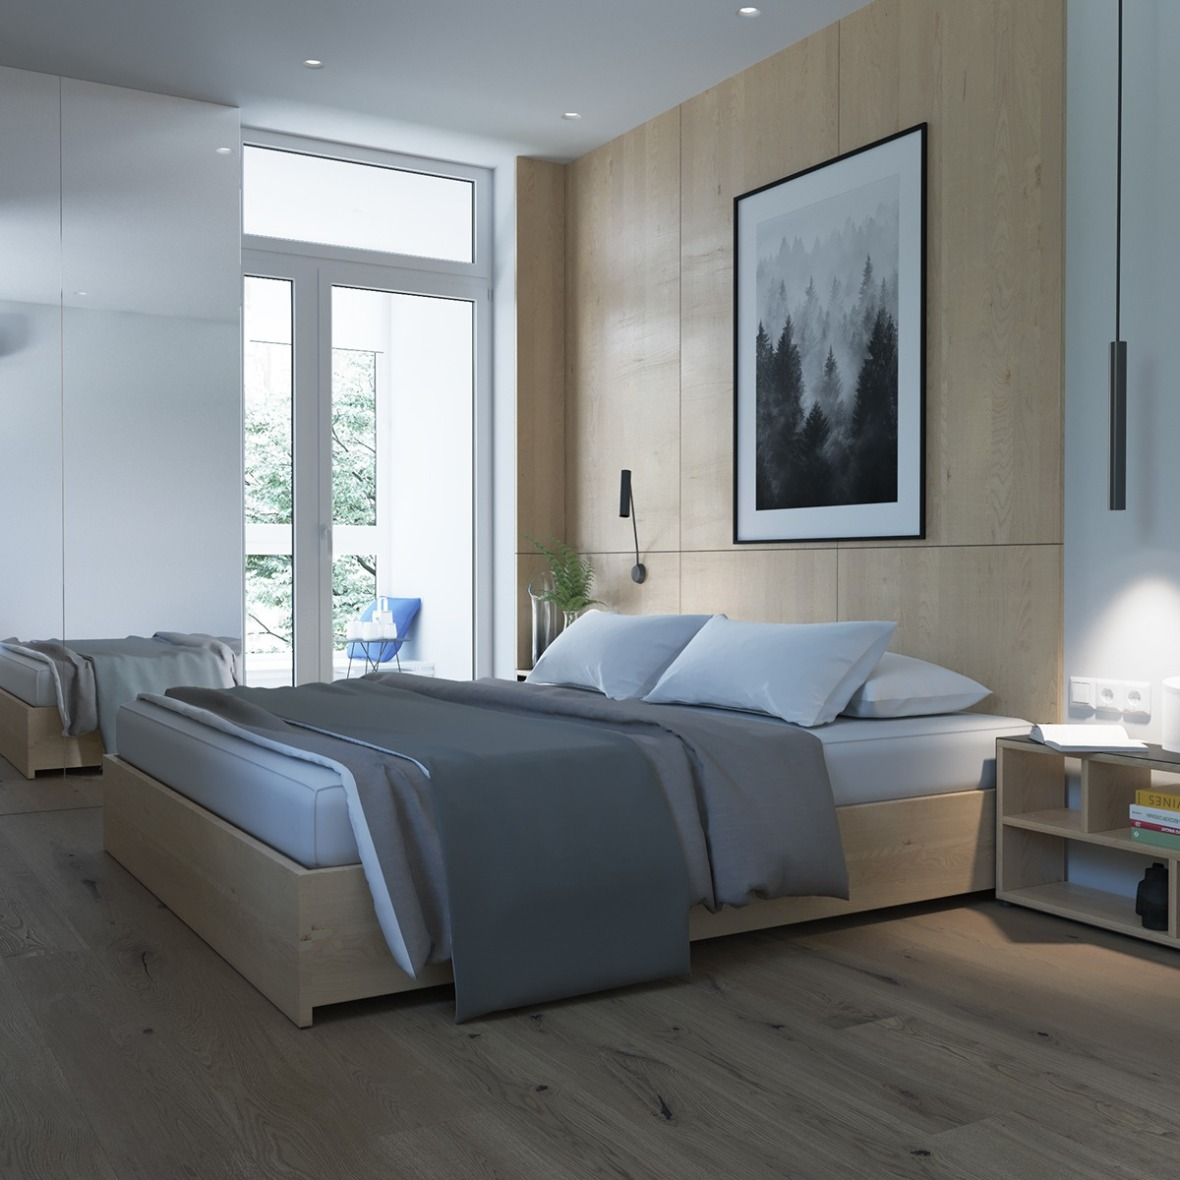 2large-art-over-the-bed-white-linens